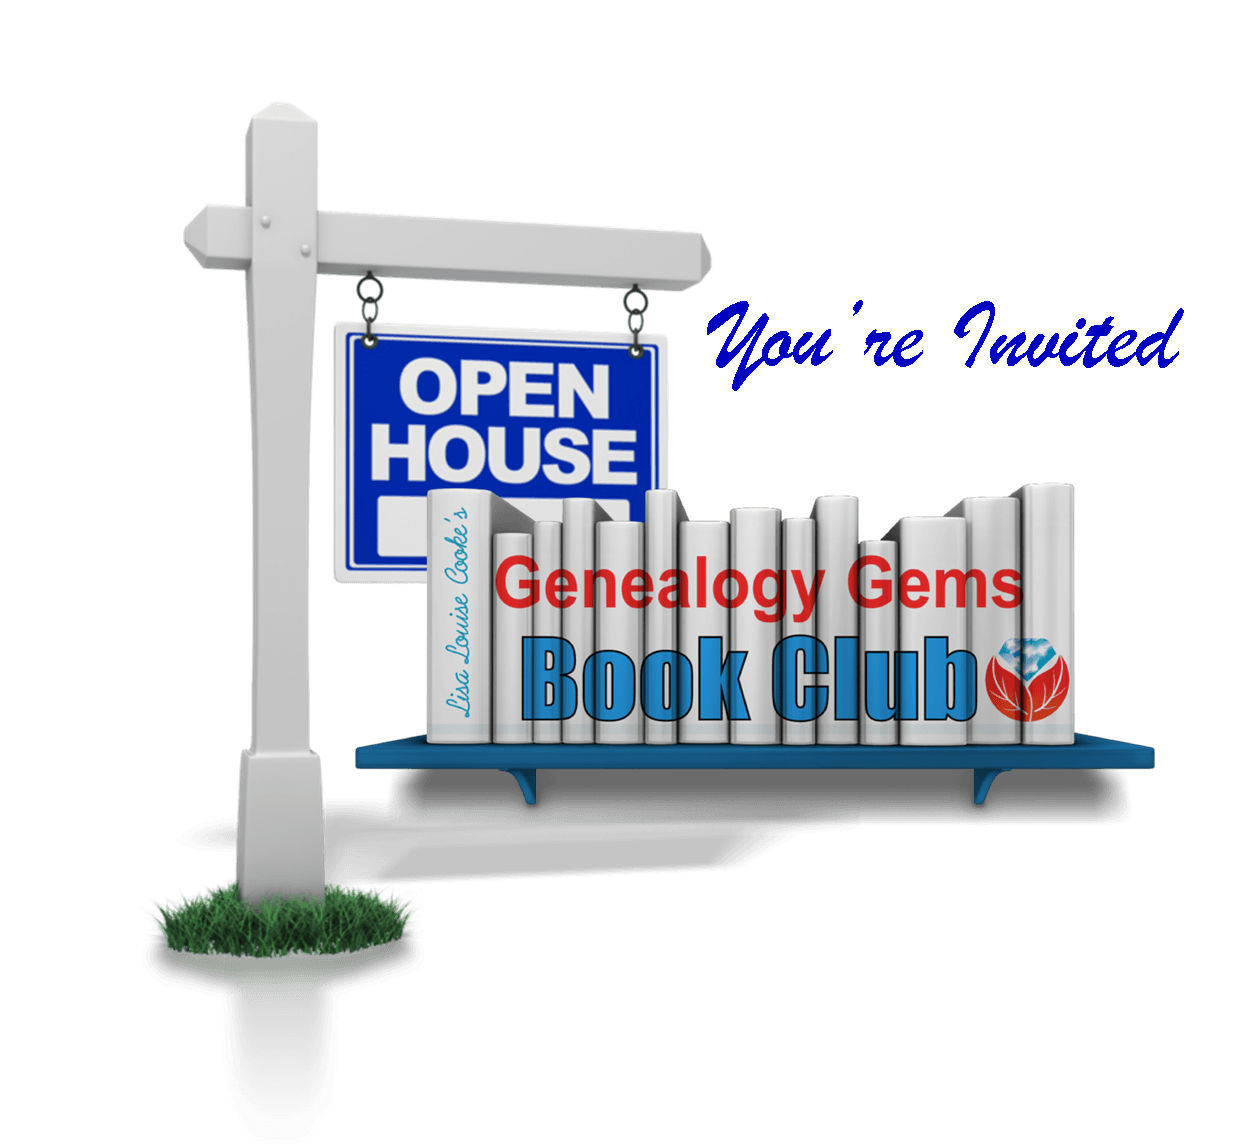 You're Invited! Genealogy Gems Book Club Open House at RootsTech 2016